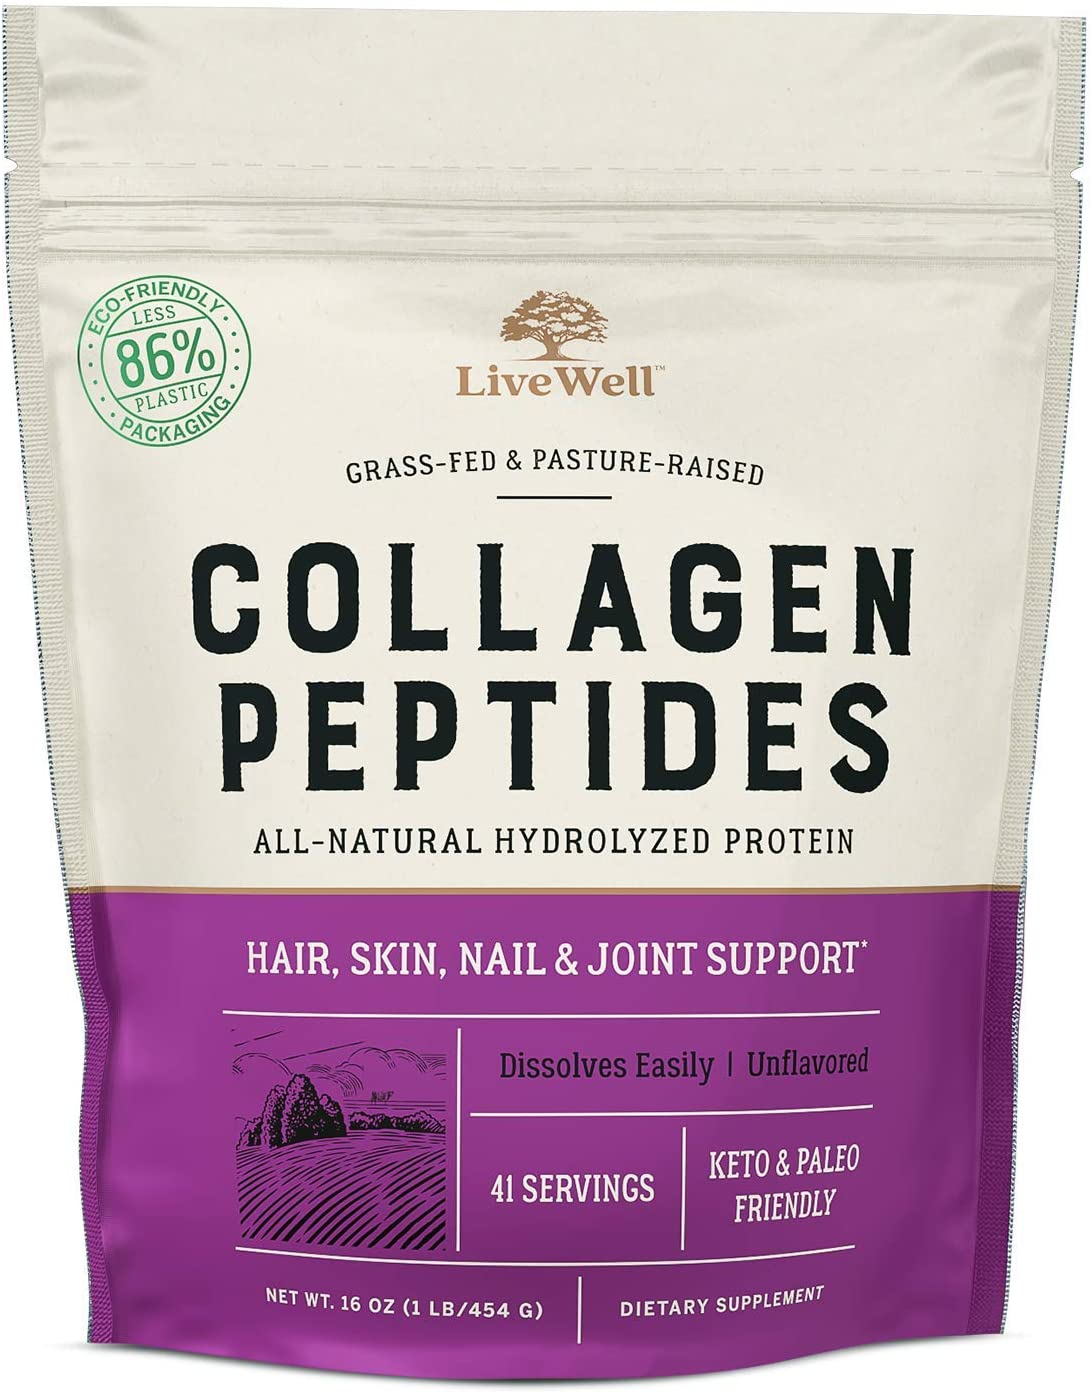 Livewell Collagen Peptides Collagen Peptide Powder